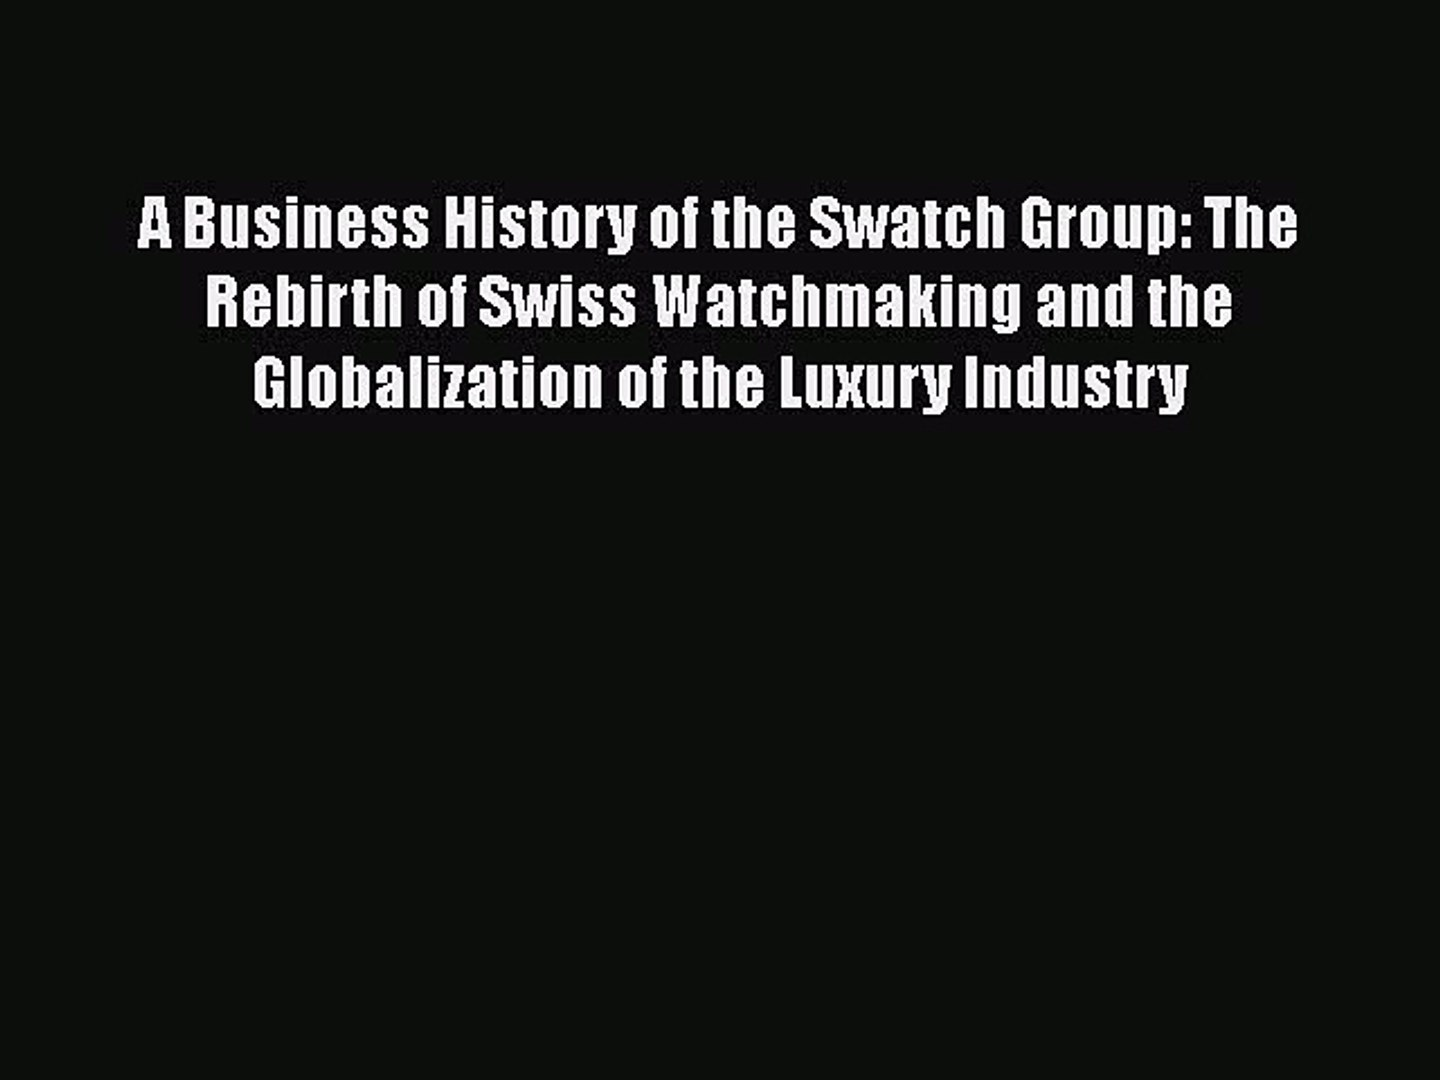 [PDF Download] A Business History of the Swatch Group: The Rebirth of Swiss Watchmaking and